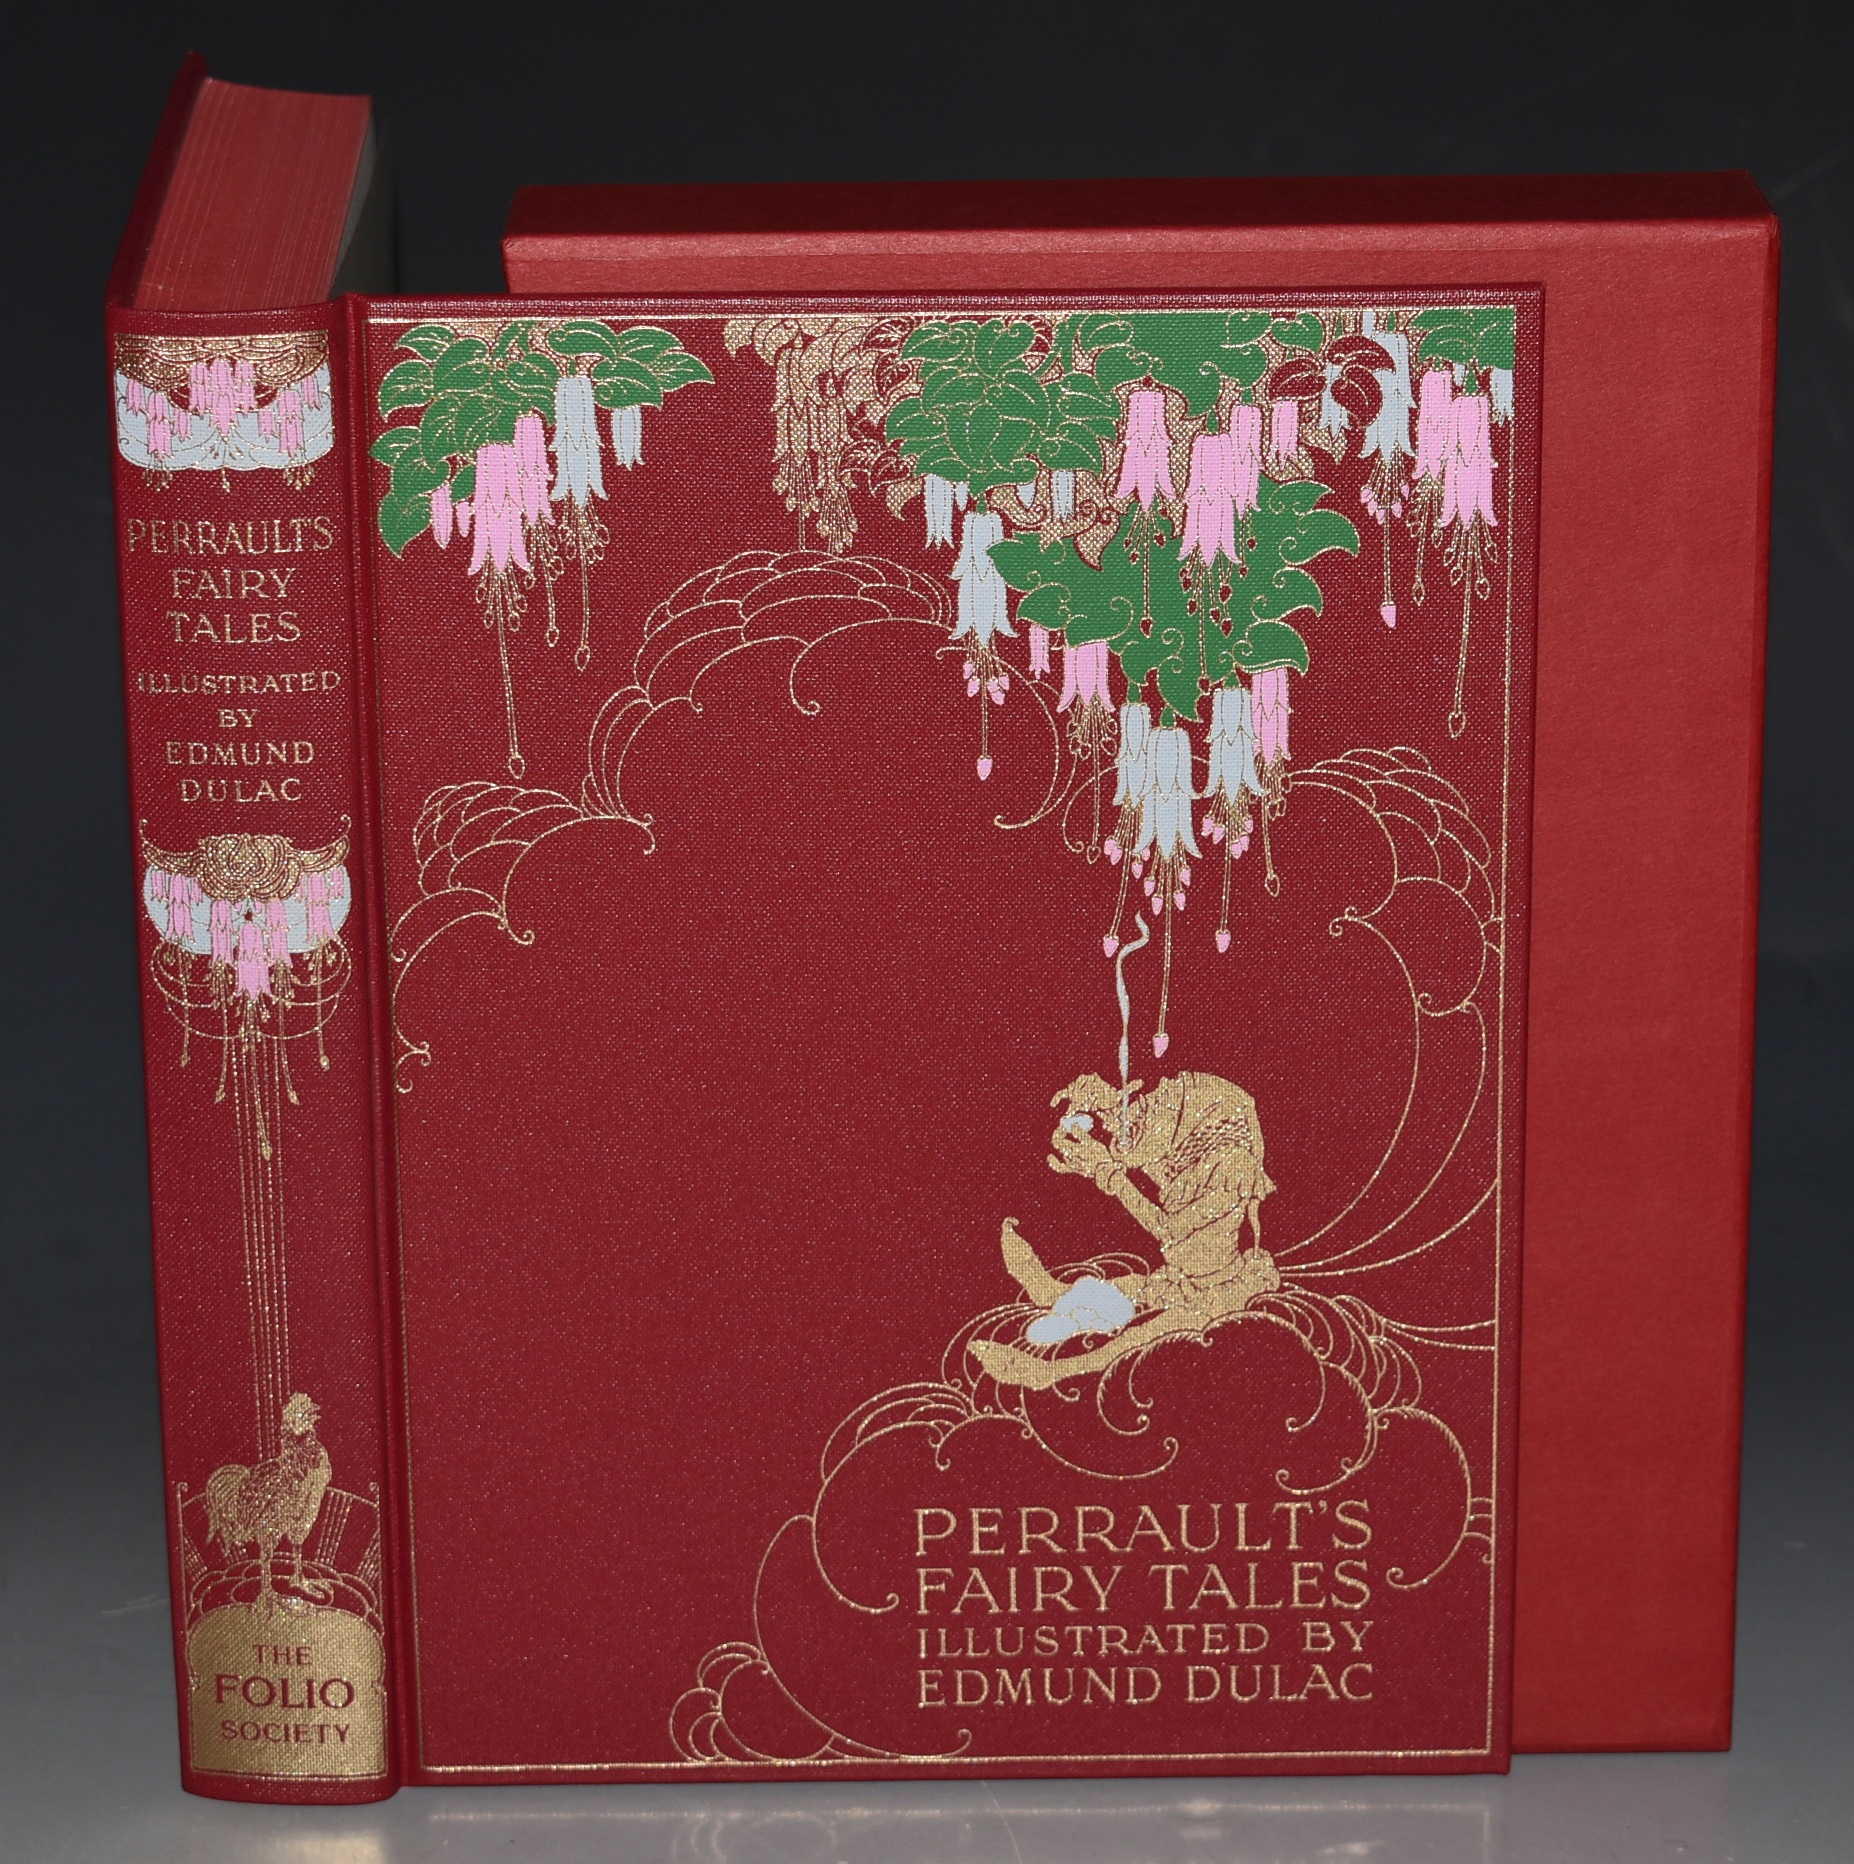 Image for The Fairy Tales of Charles Perrault Illustrated by Edmund Dulac. With slipcase.